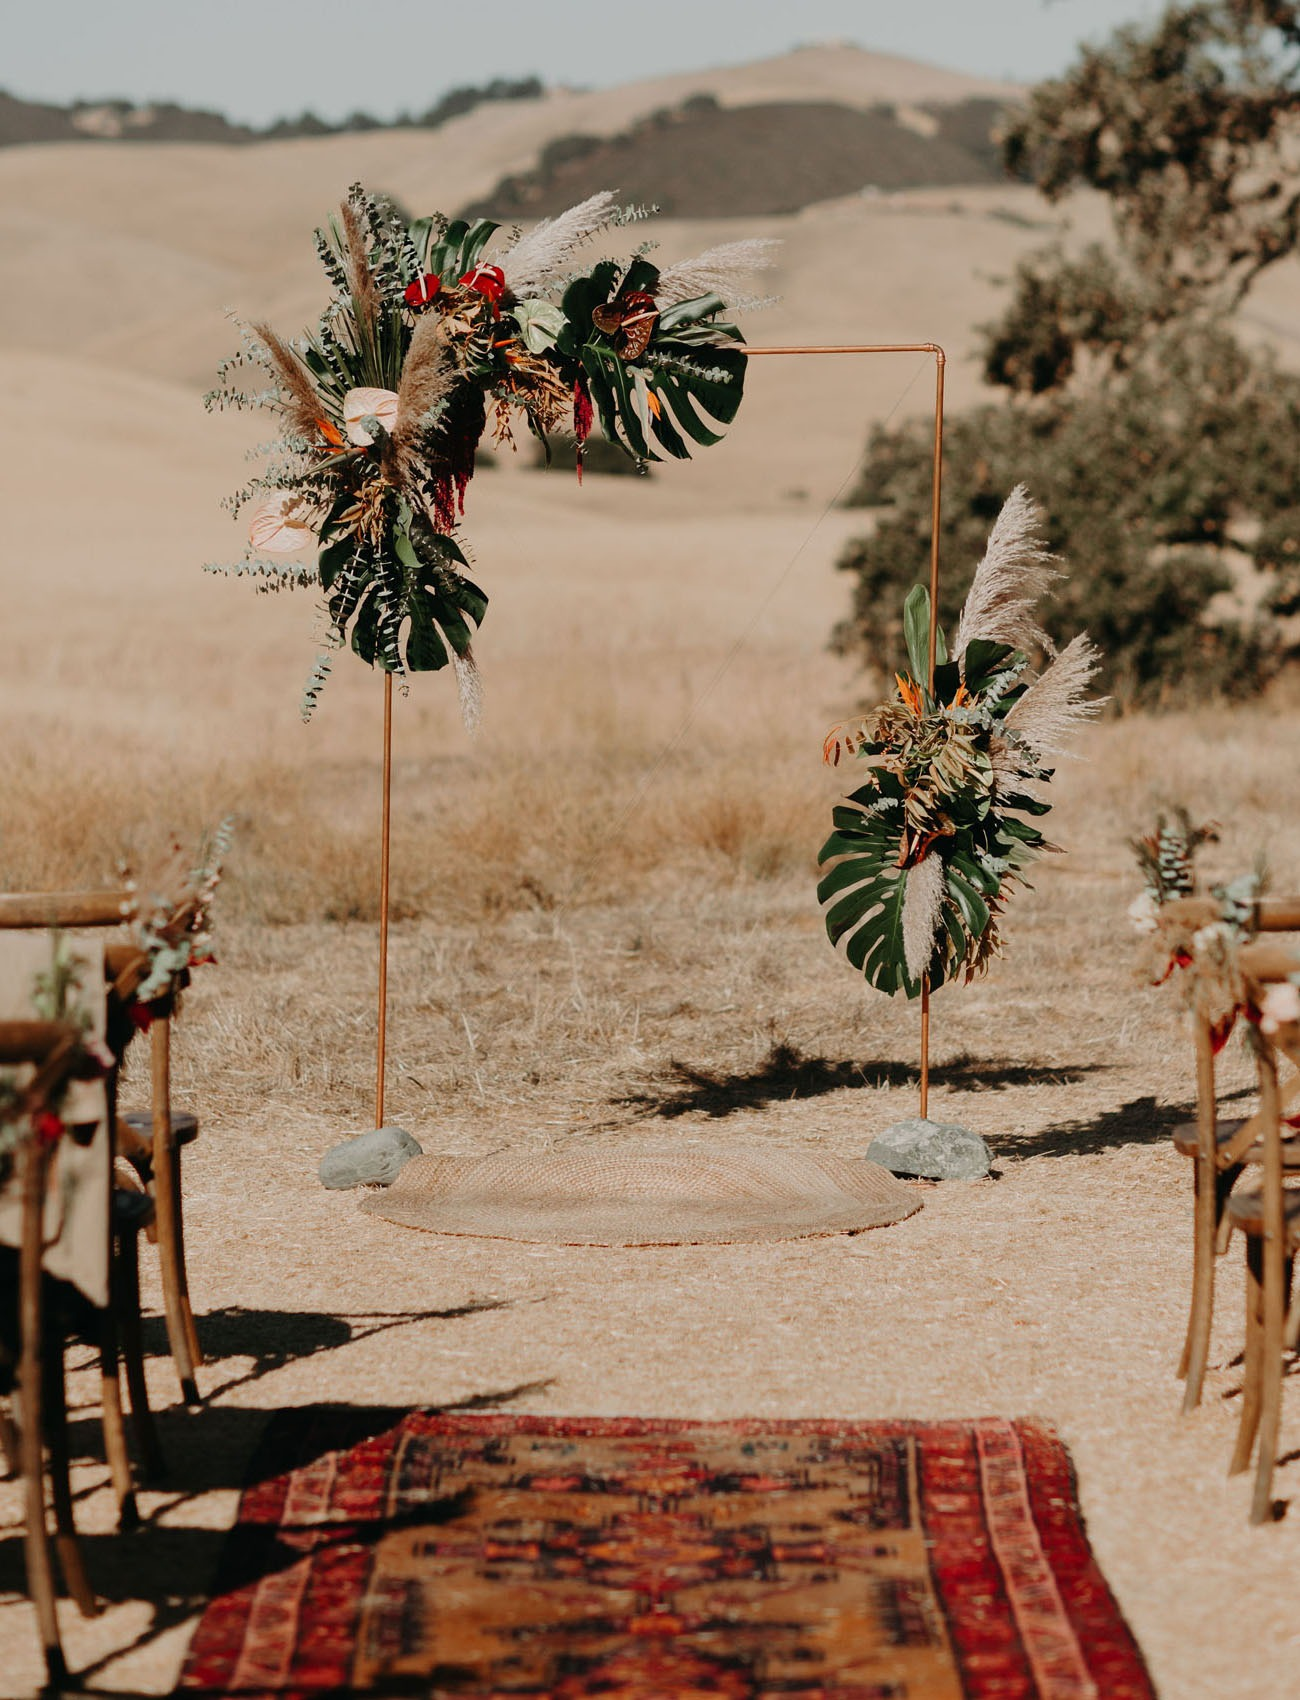 copper pipe wedding backdrop arbor with tropical plants